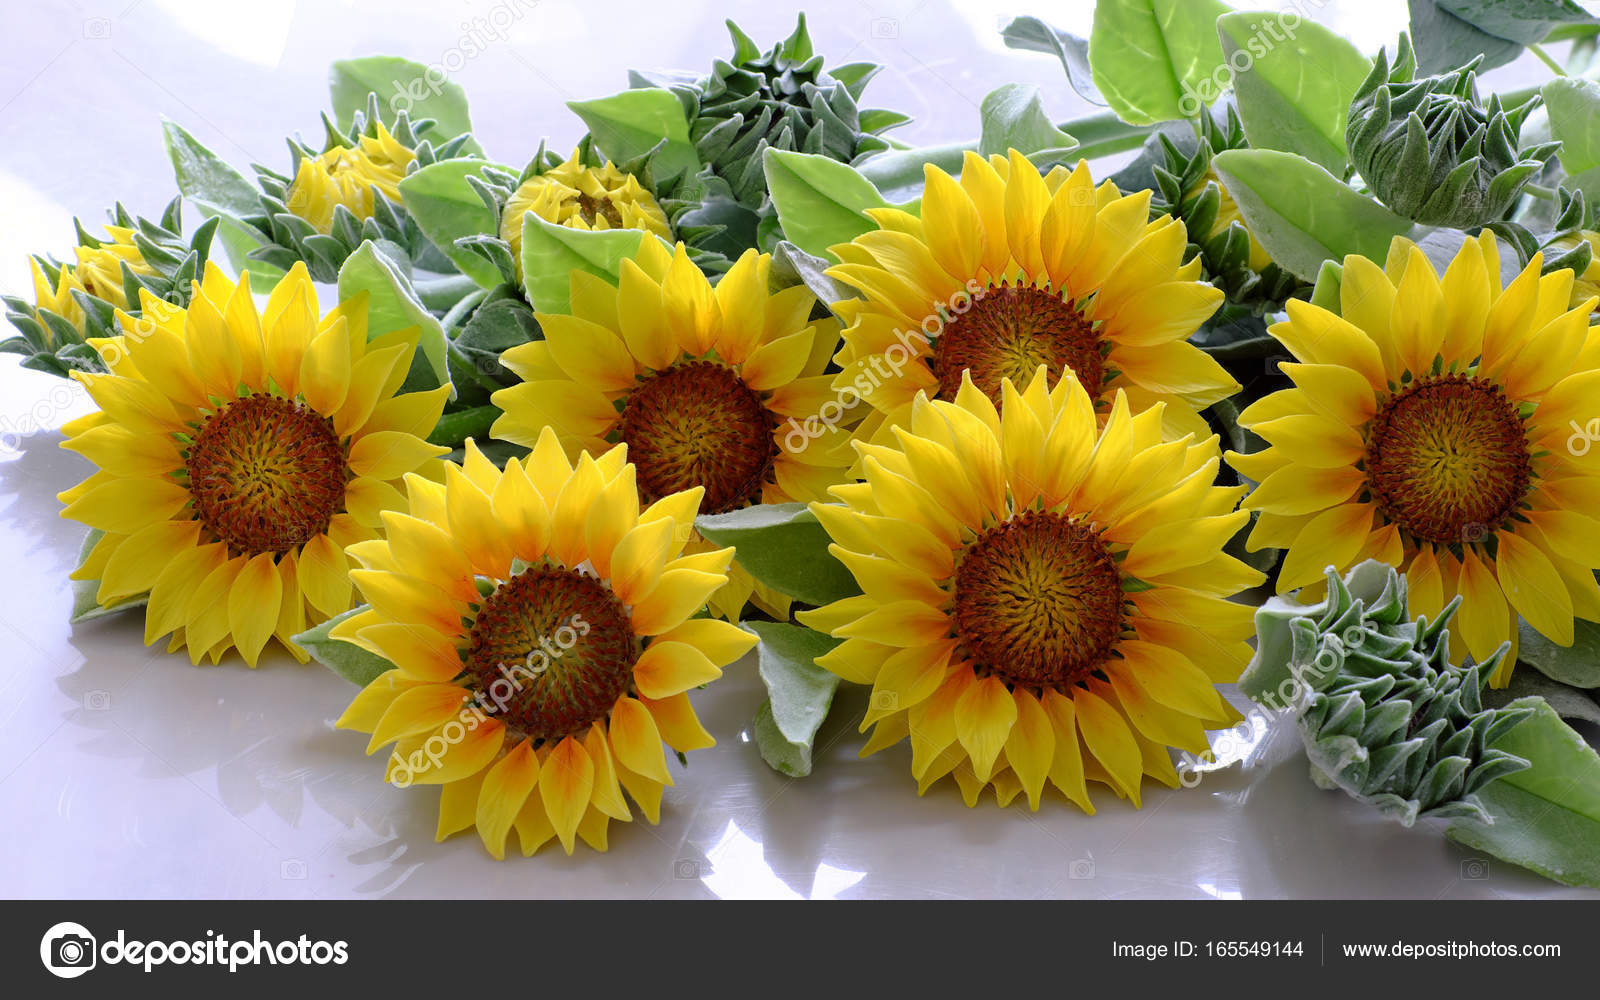 Clay flower sunflower bouquet stock photo xuanhuongho 165549144 amazing clay flower handmade product for home decor sunflower bouquet bloom in yellow and green leaf on white background beautiful artificial flower izmirmasajfo Images